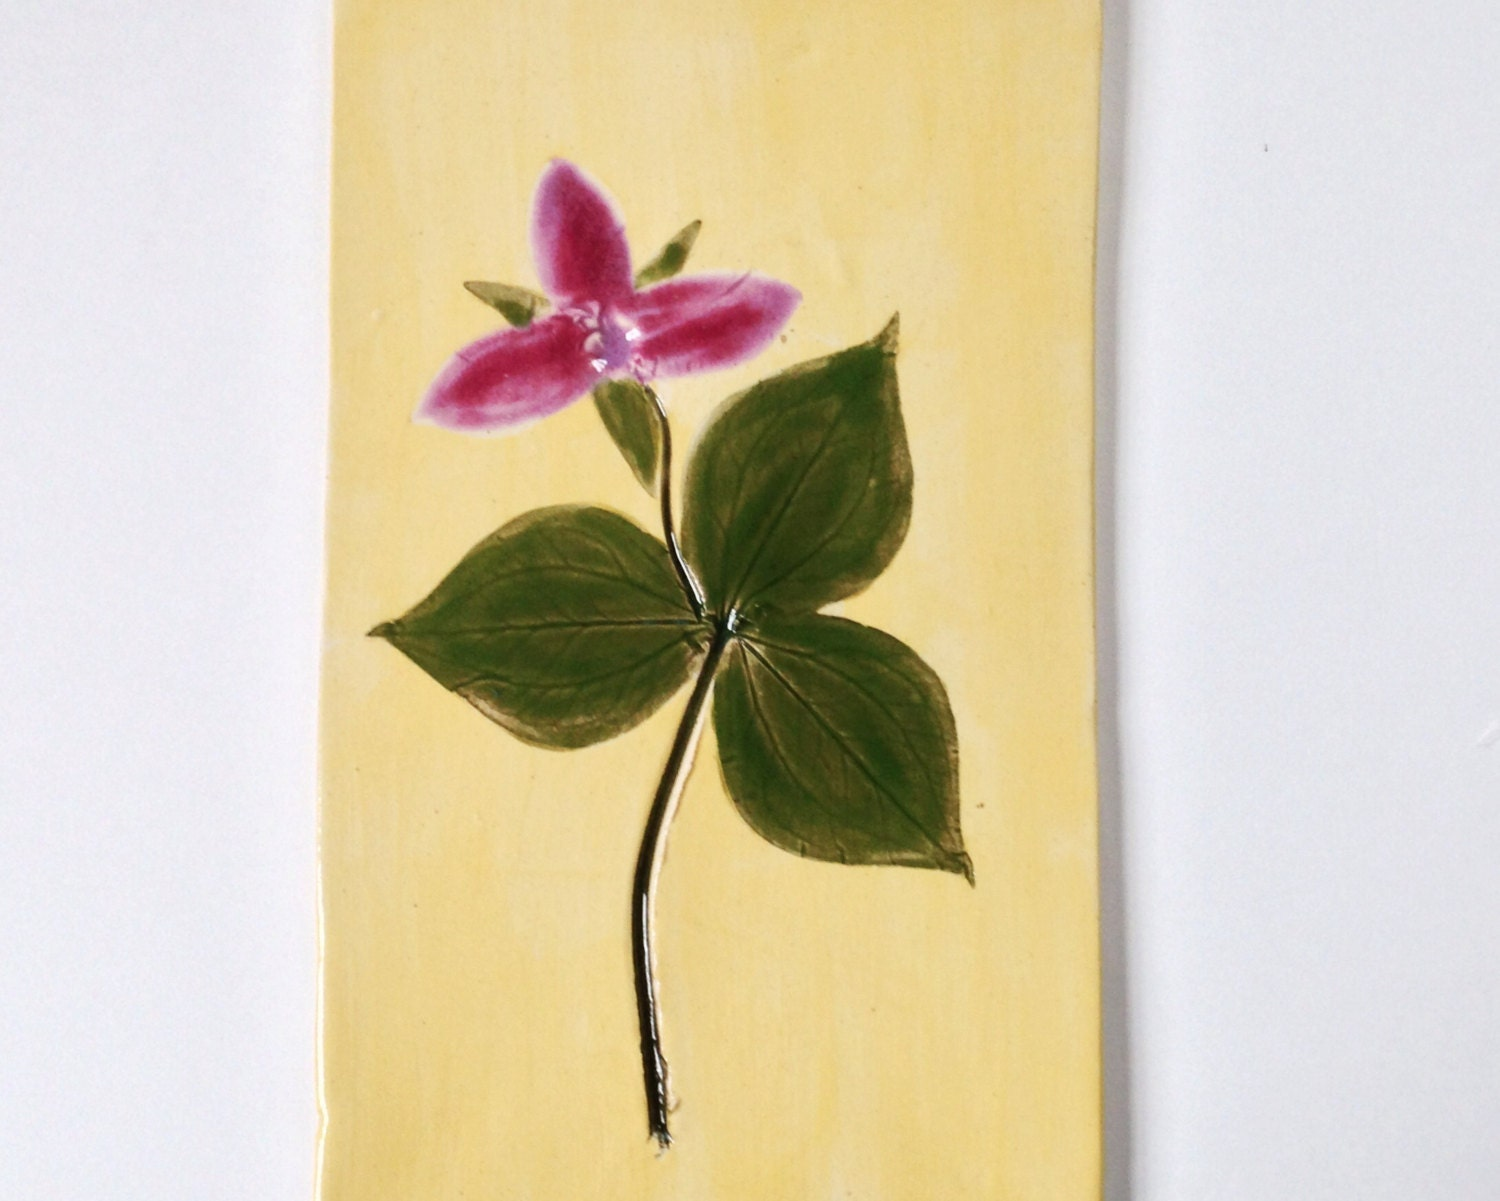 Porcelain Leaves Wall Decor: Best ideas about ceramic wall art on ...